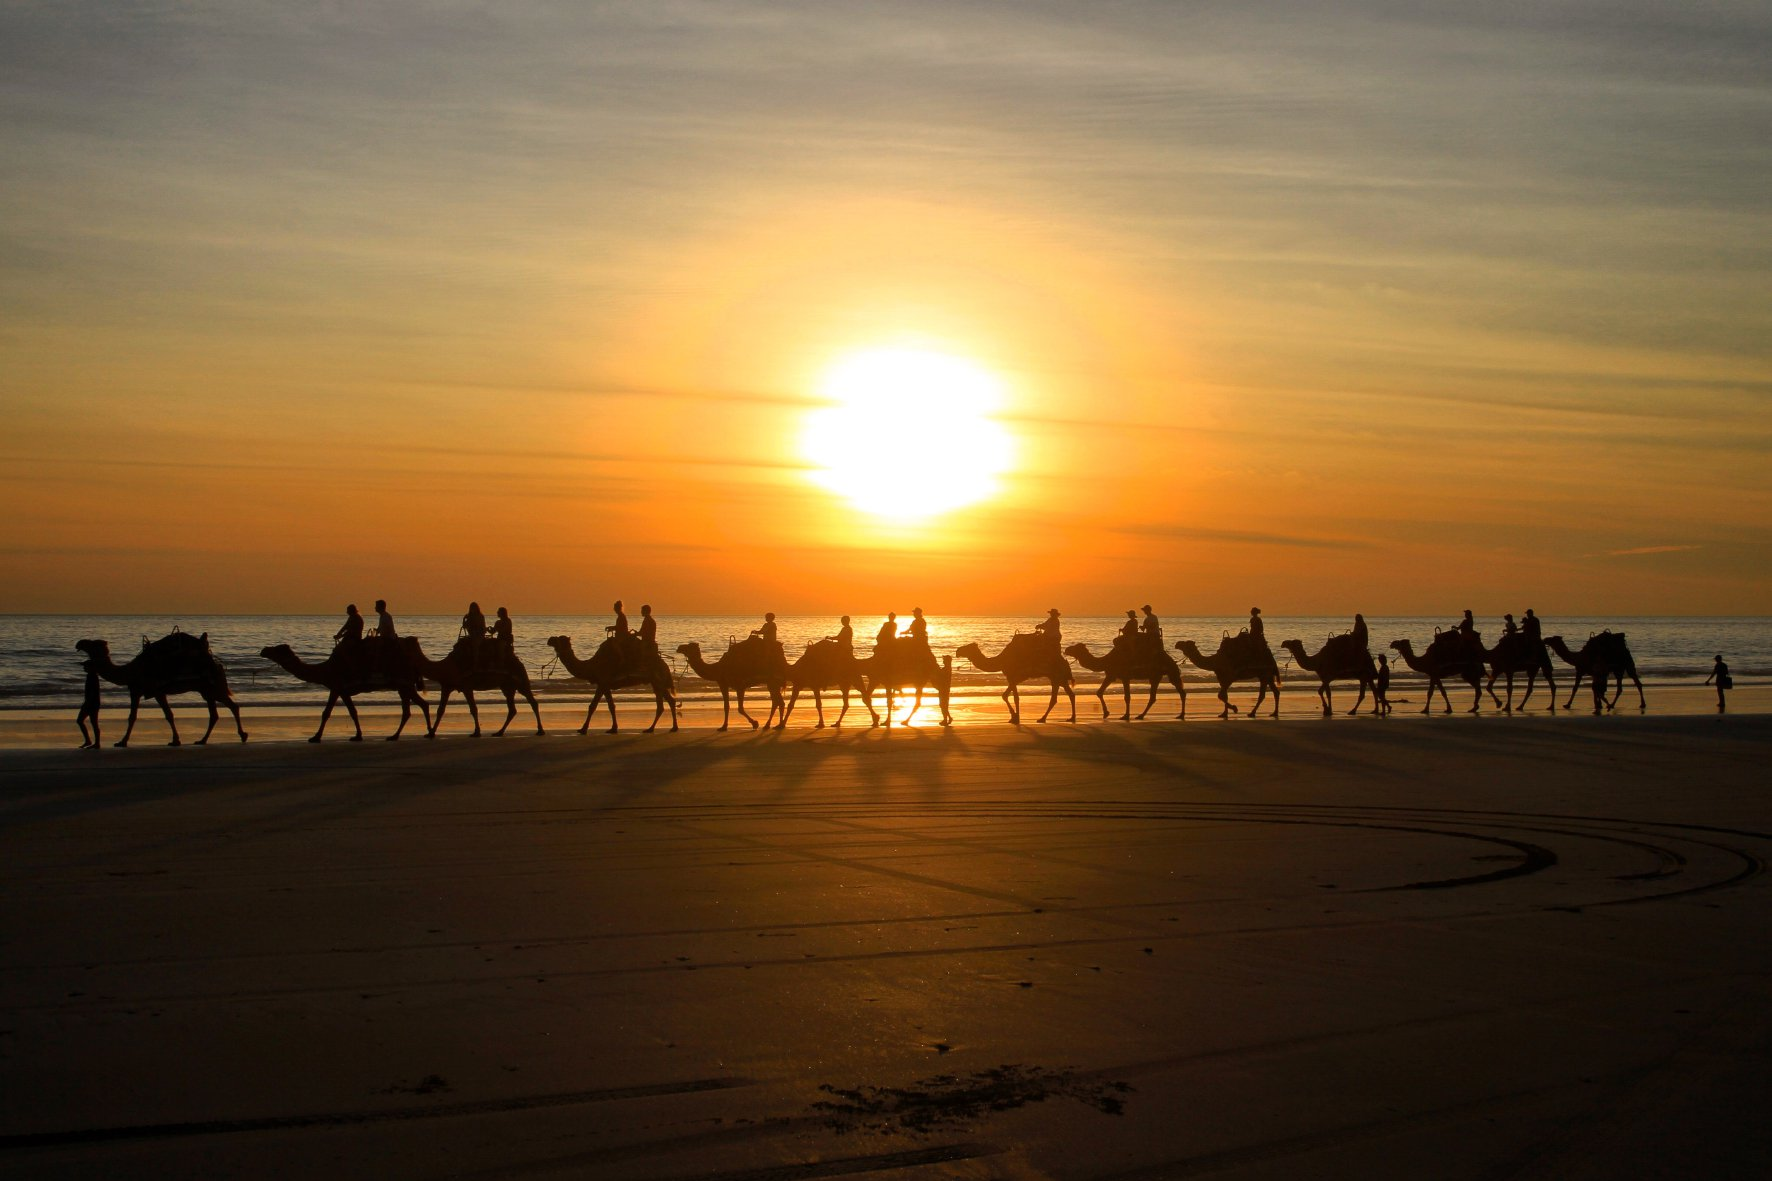 Kamele am Strand Cable Beach in Broome Australien.